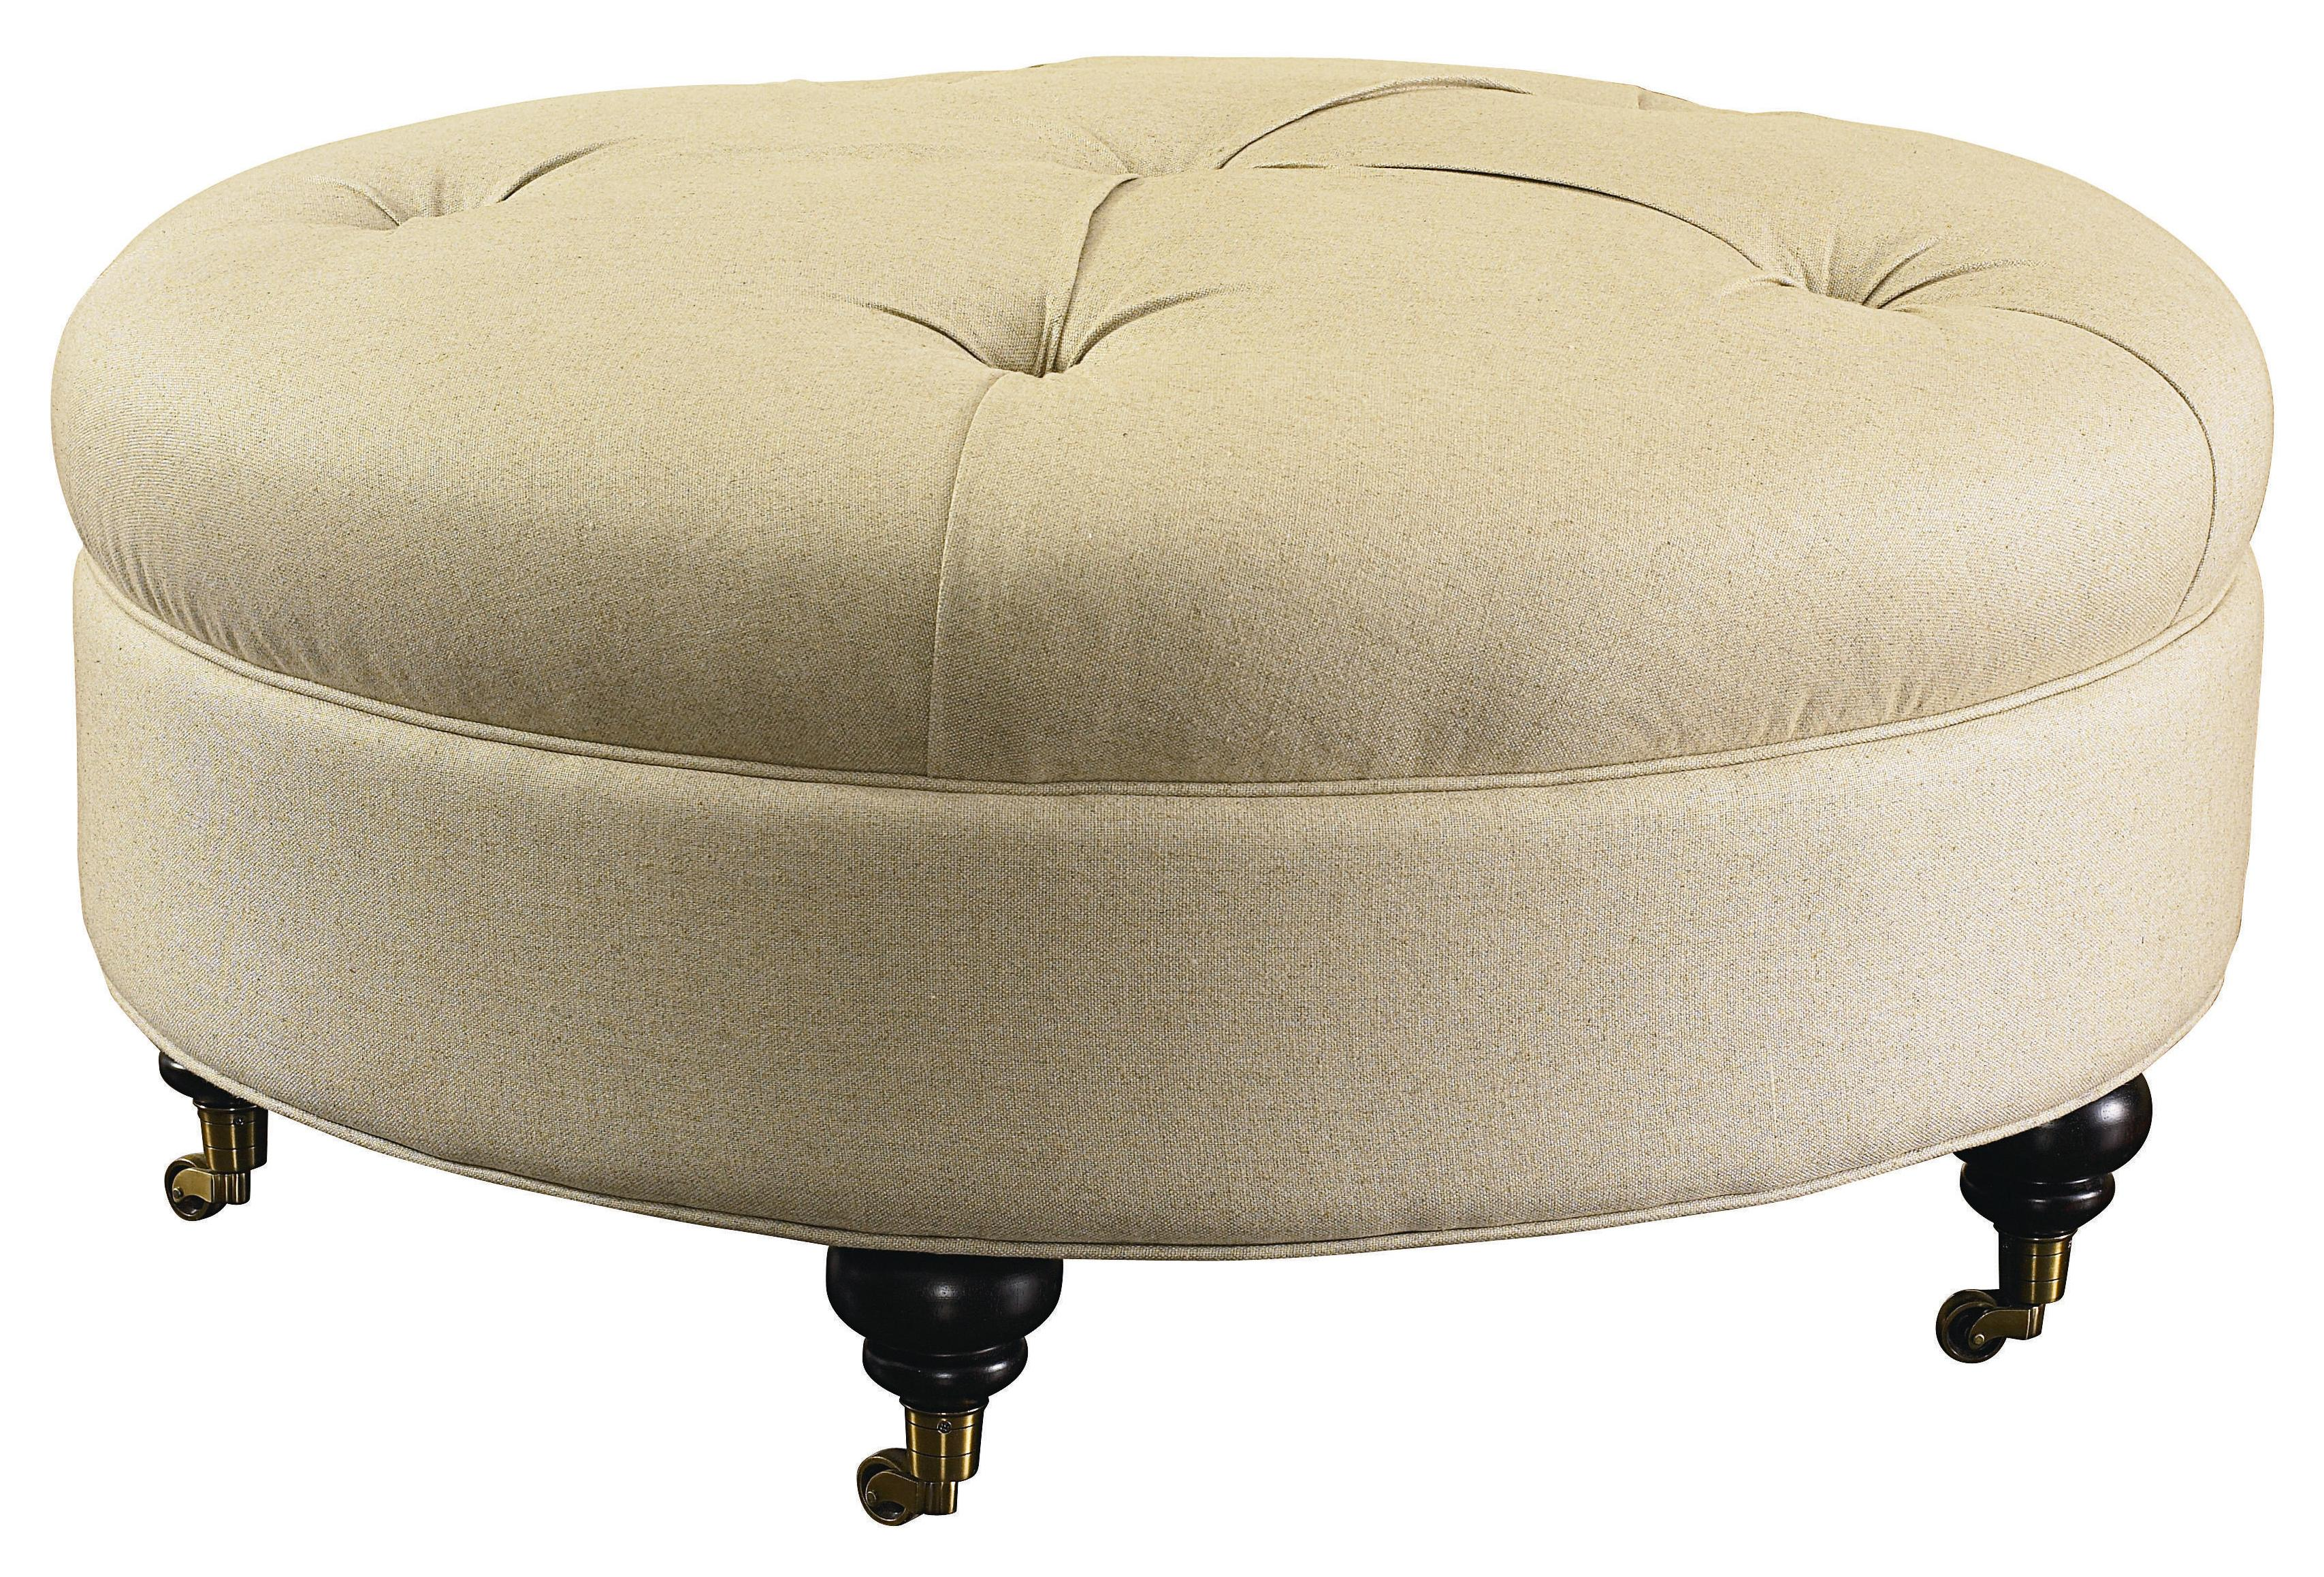 Bassett Hgtv Home Design Studio 1000 Ro Round Ottoman With Traditional Features Dunk Bright